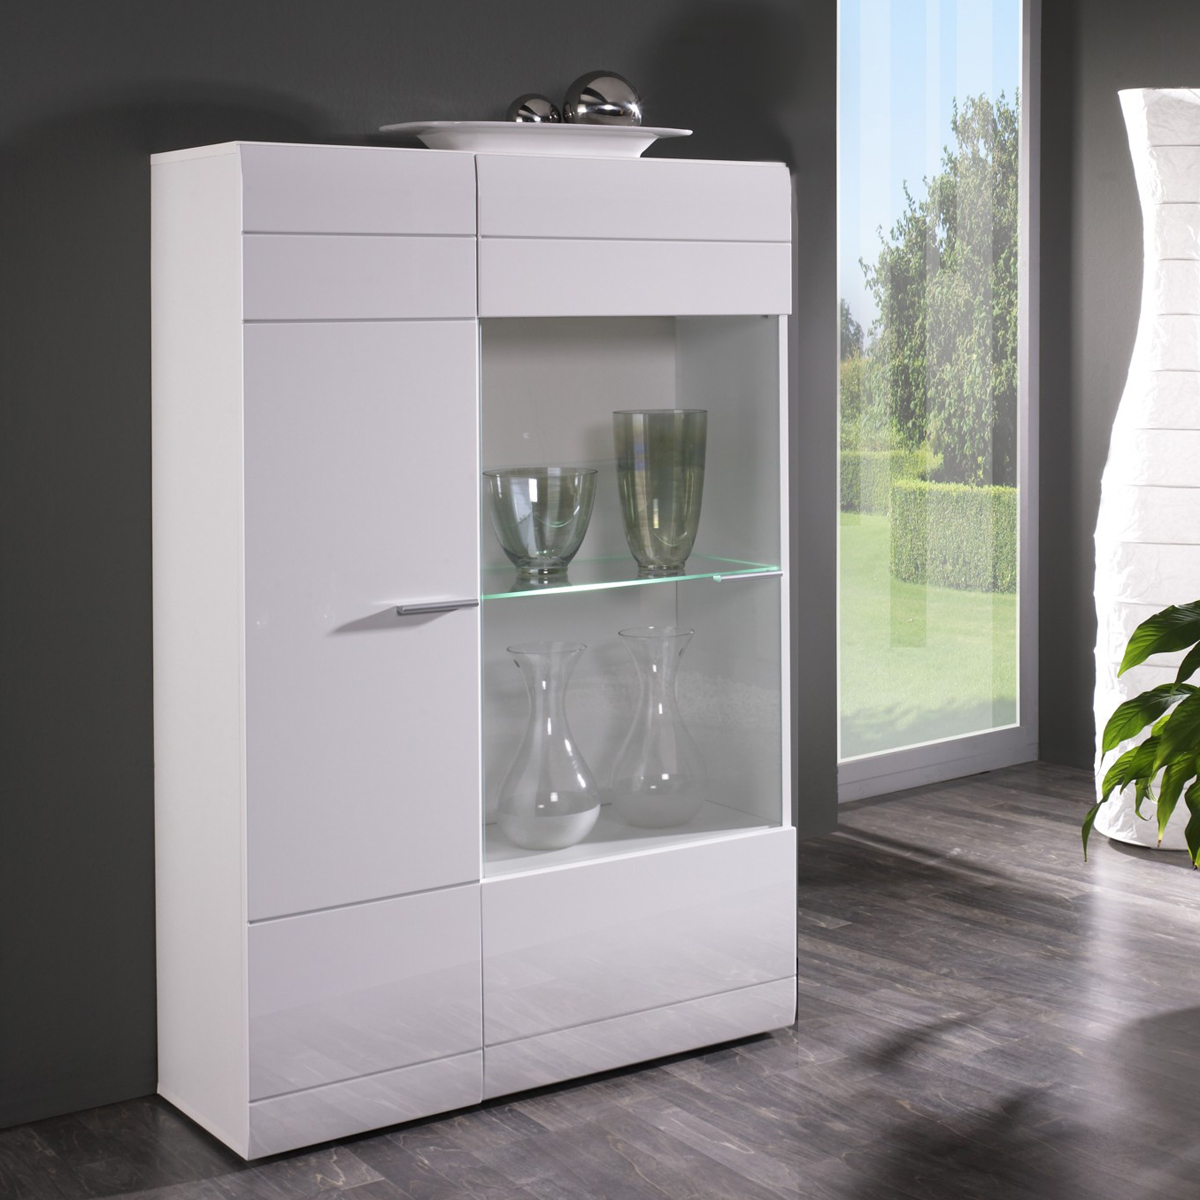 vitrine links carero kleiner wohnzimmer schrank wei. Black Bedroom Furniture Sets. Home Design Ideas